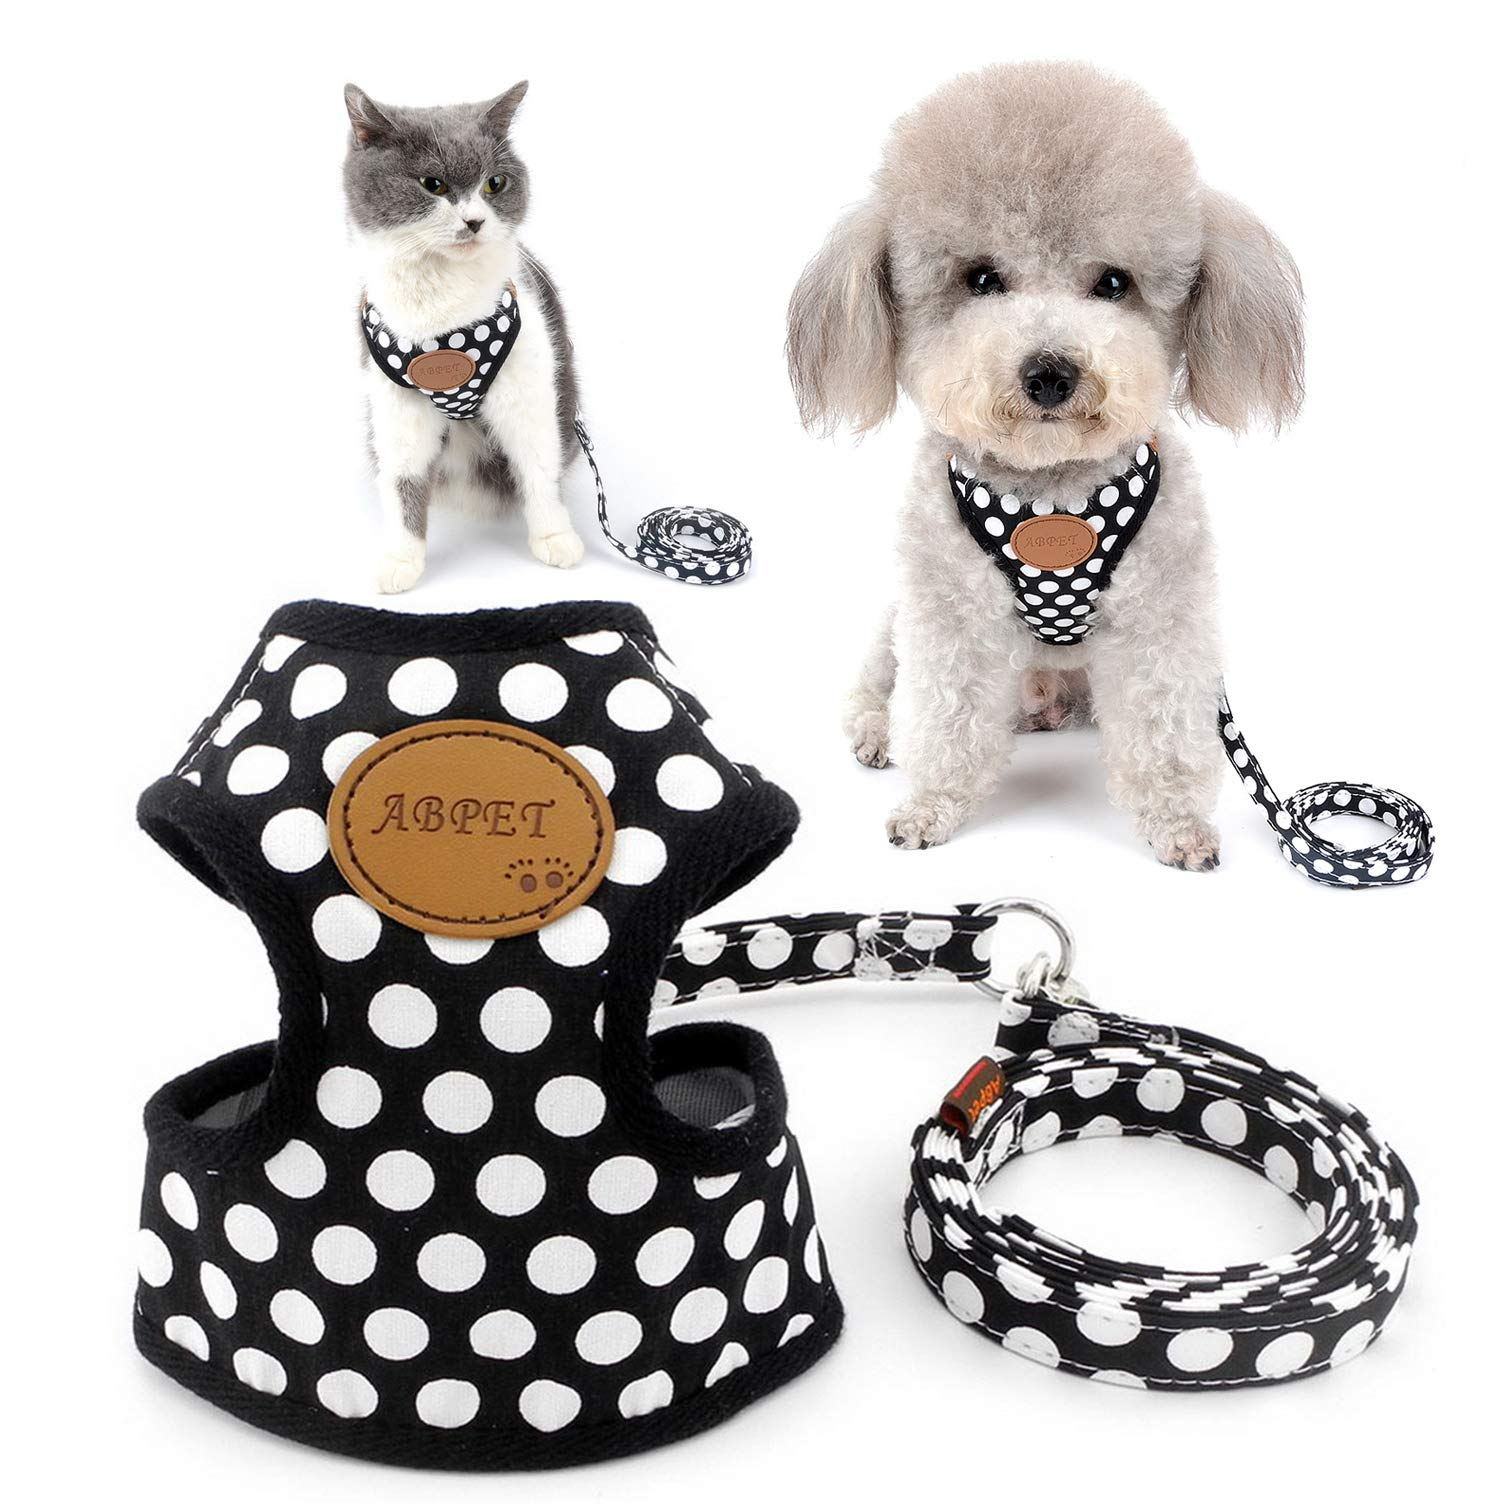 SELMAI Polka Dots Dog Harness Vest Leash Set Paw Patch Mesh Padded No Pull Leads for Small Dog Puppy Cat Black L by SELMAI